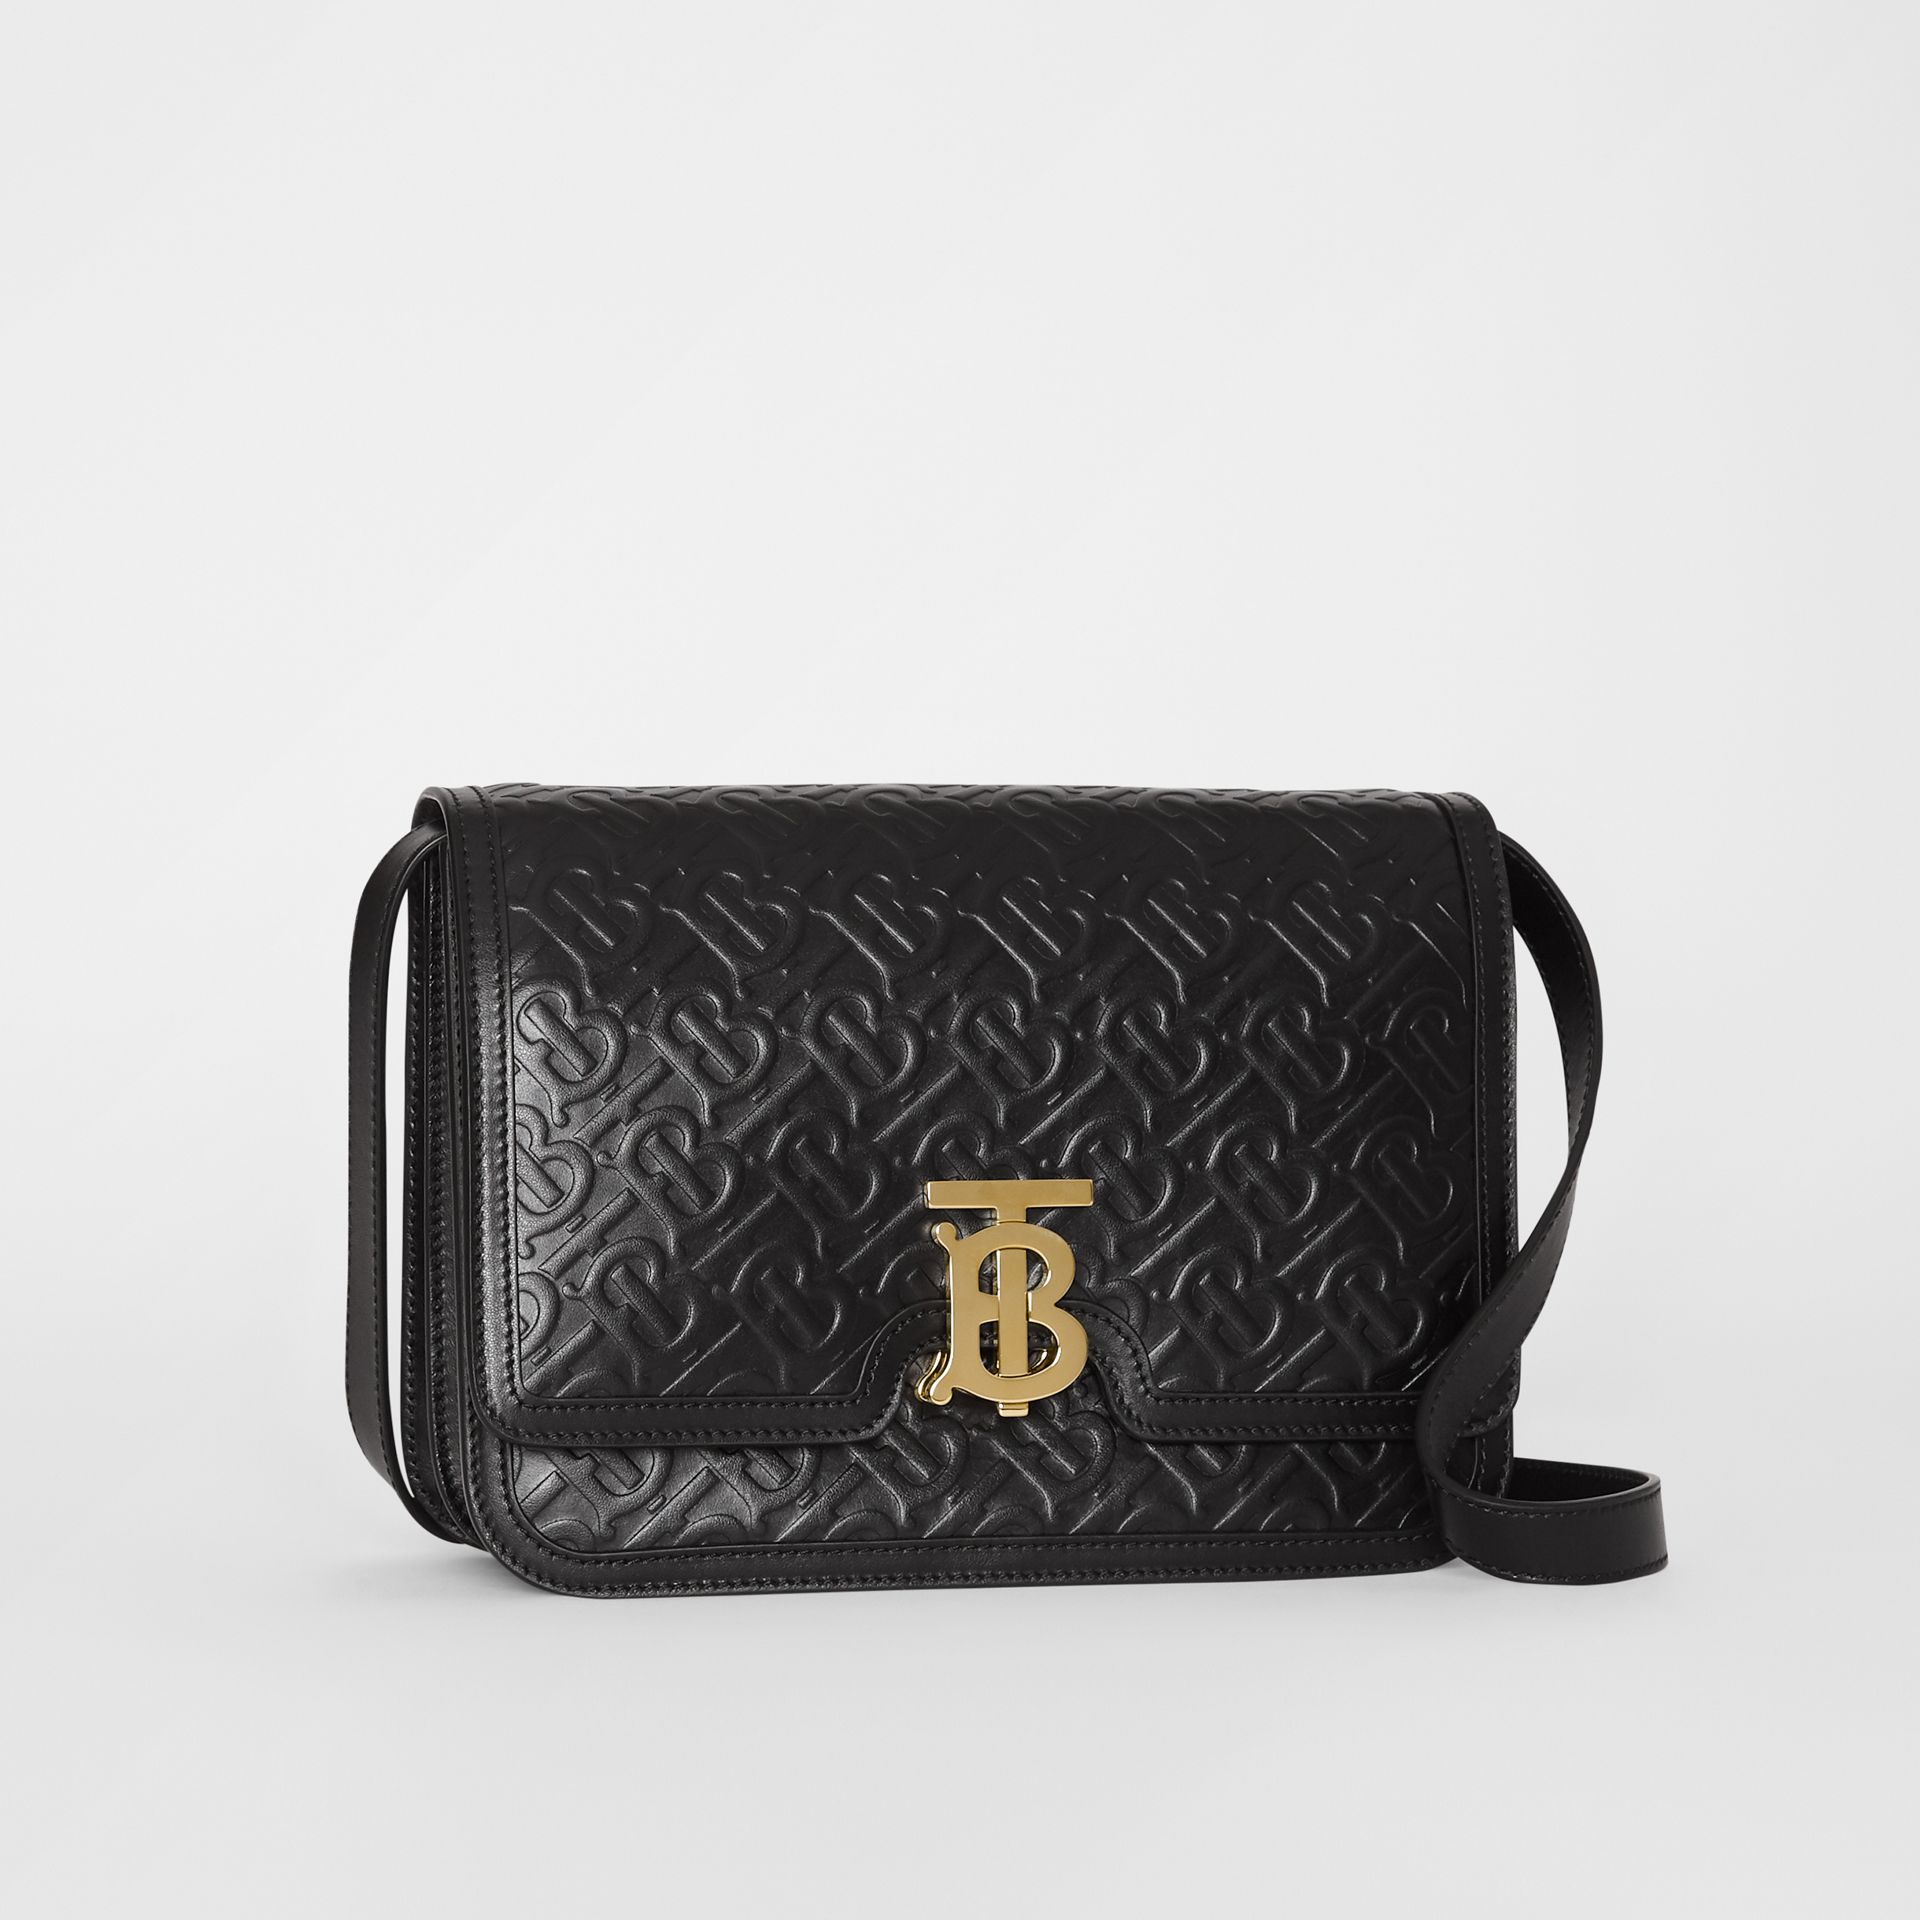 Medium Monogram Leather TB Bag in Black - Women | Burberry - gallery image 6